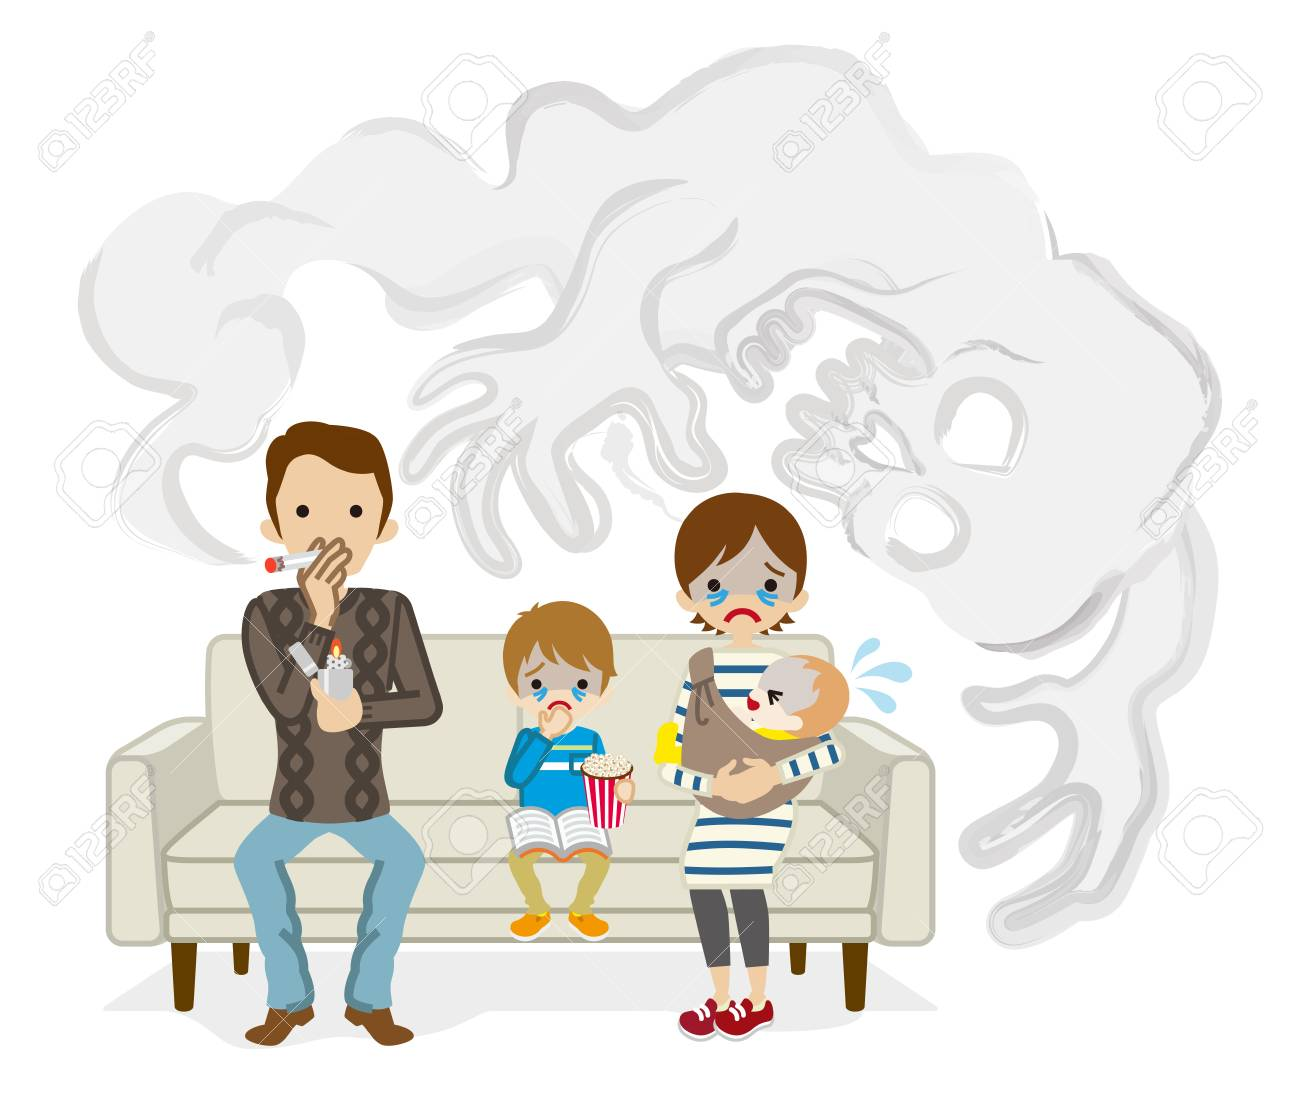 Secondhand smoke issue - Cartoon Family - 93466154